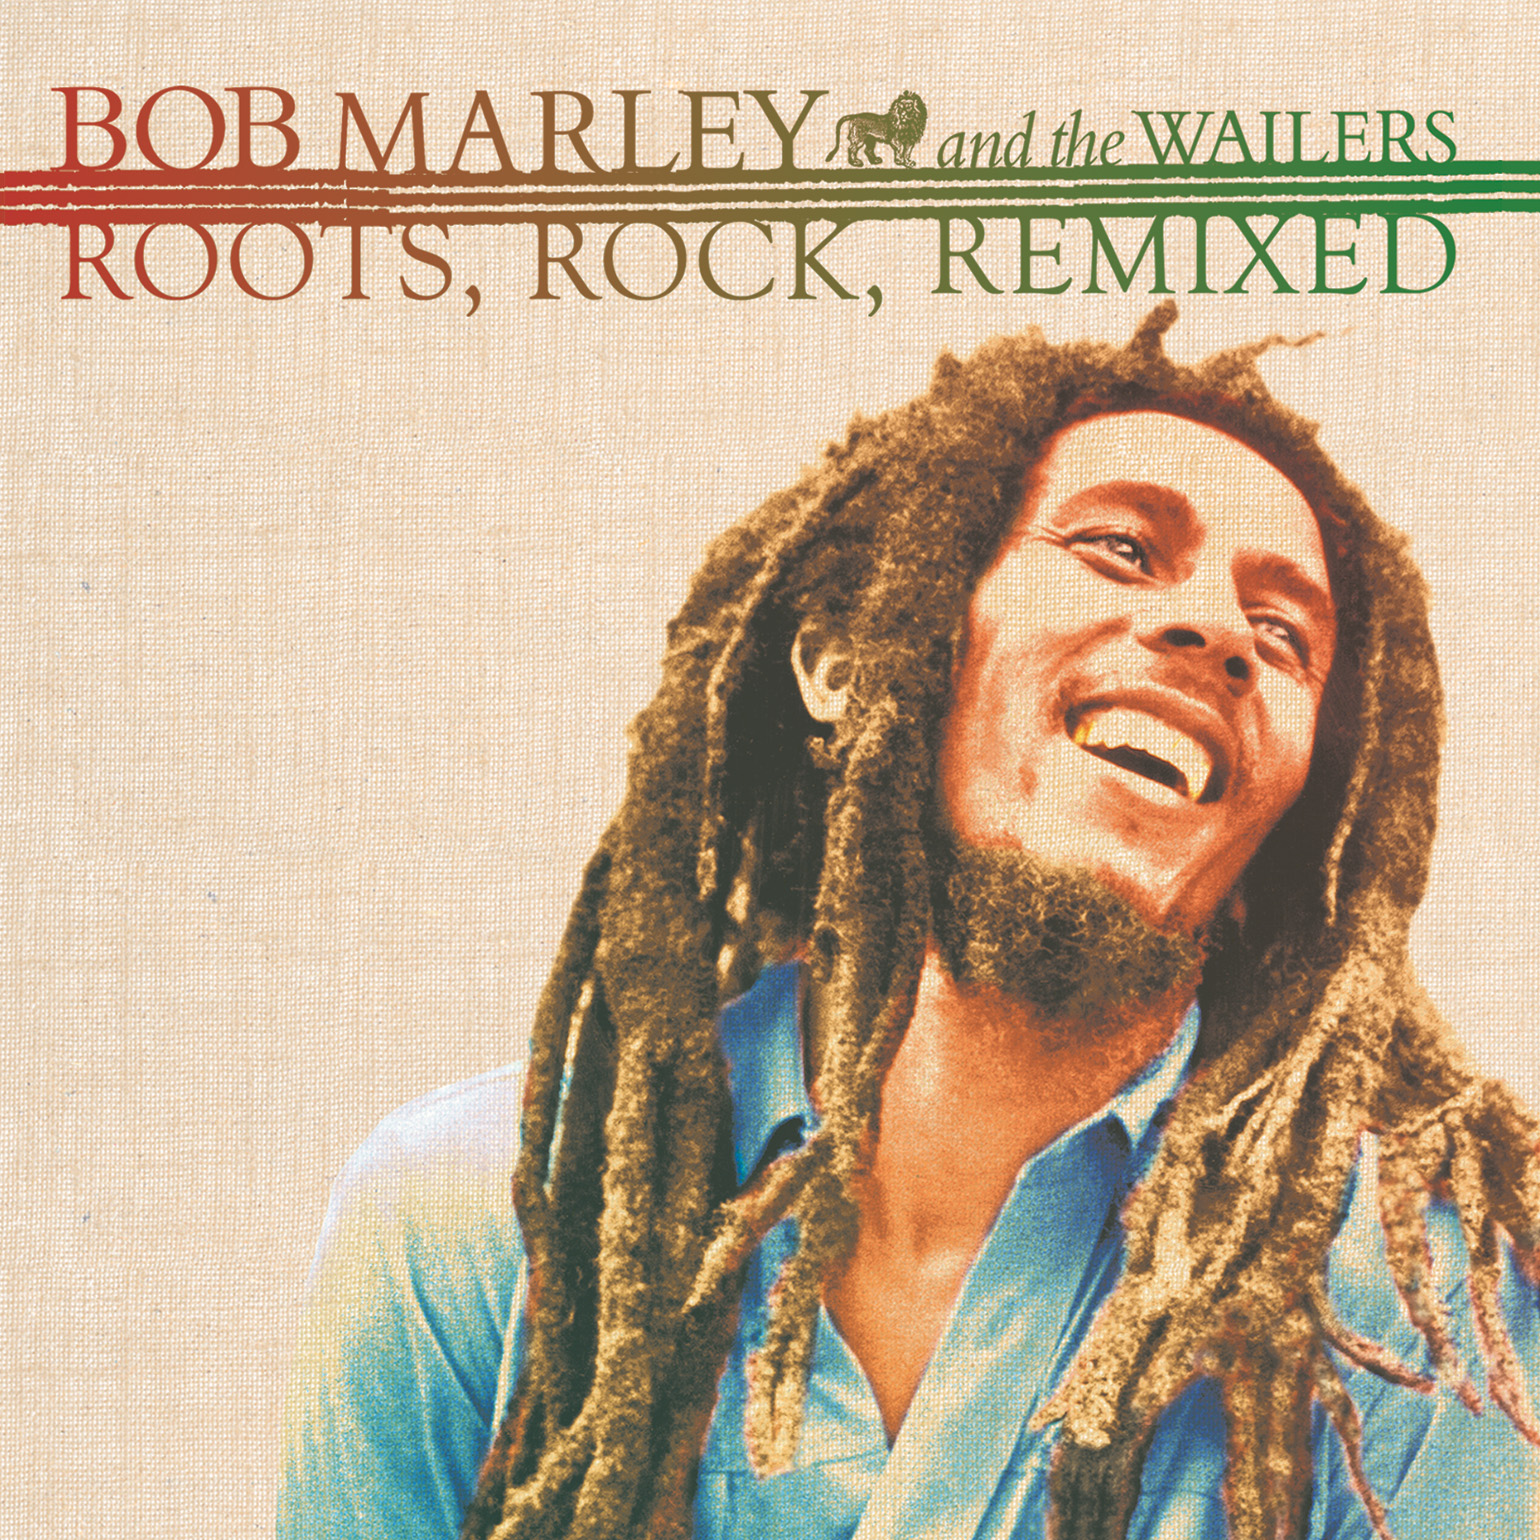 Roots, Rock, Remixed: The Complete Sessions by Bob Marley & The Wailers